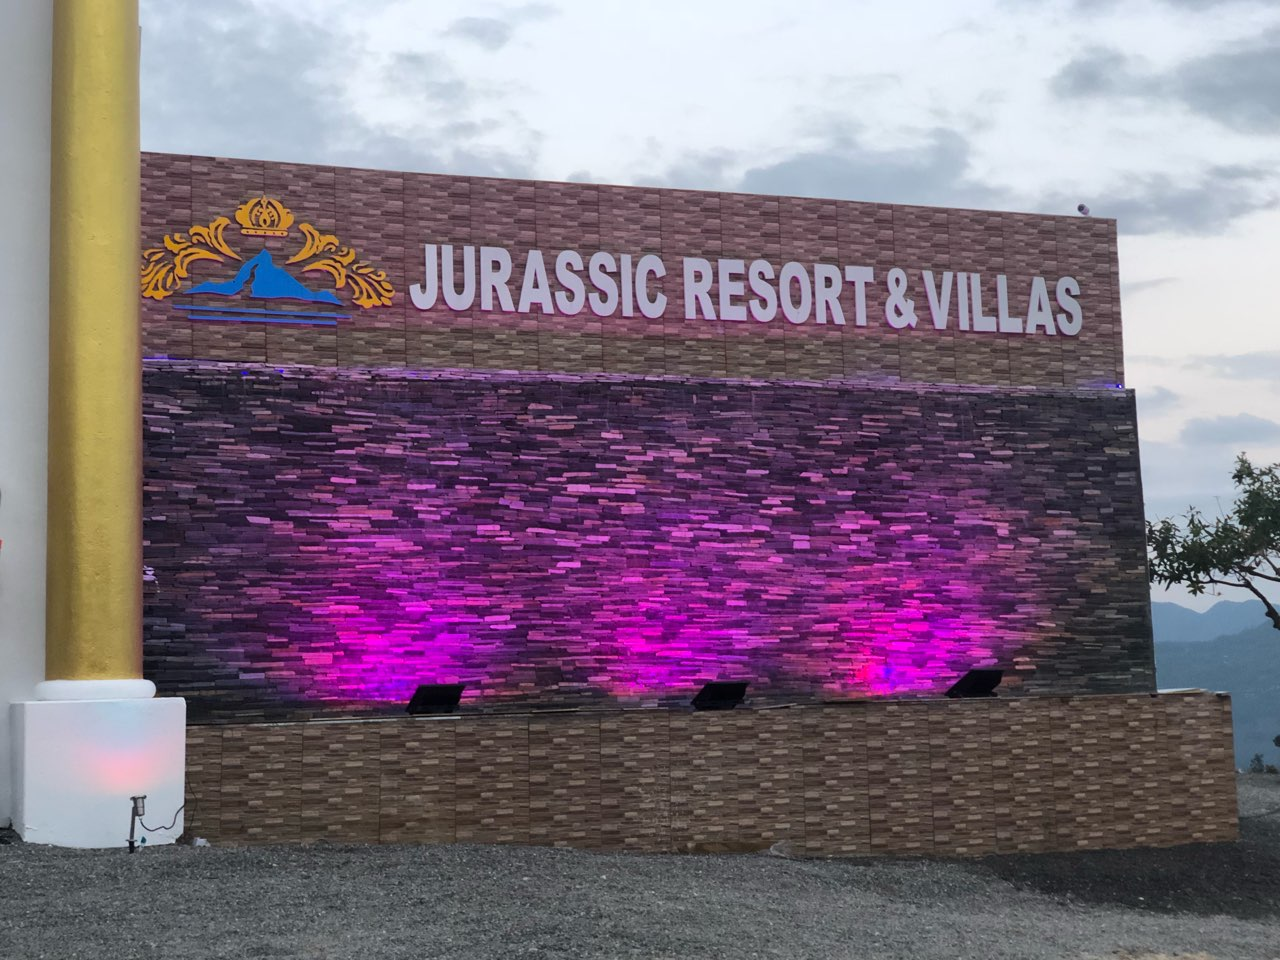 Jurassic Resort & Villas